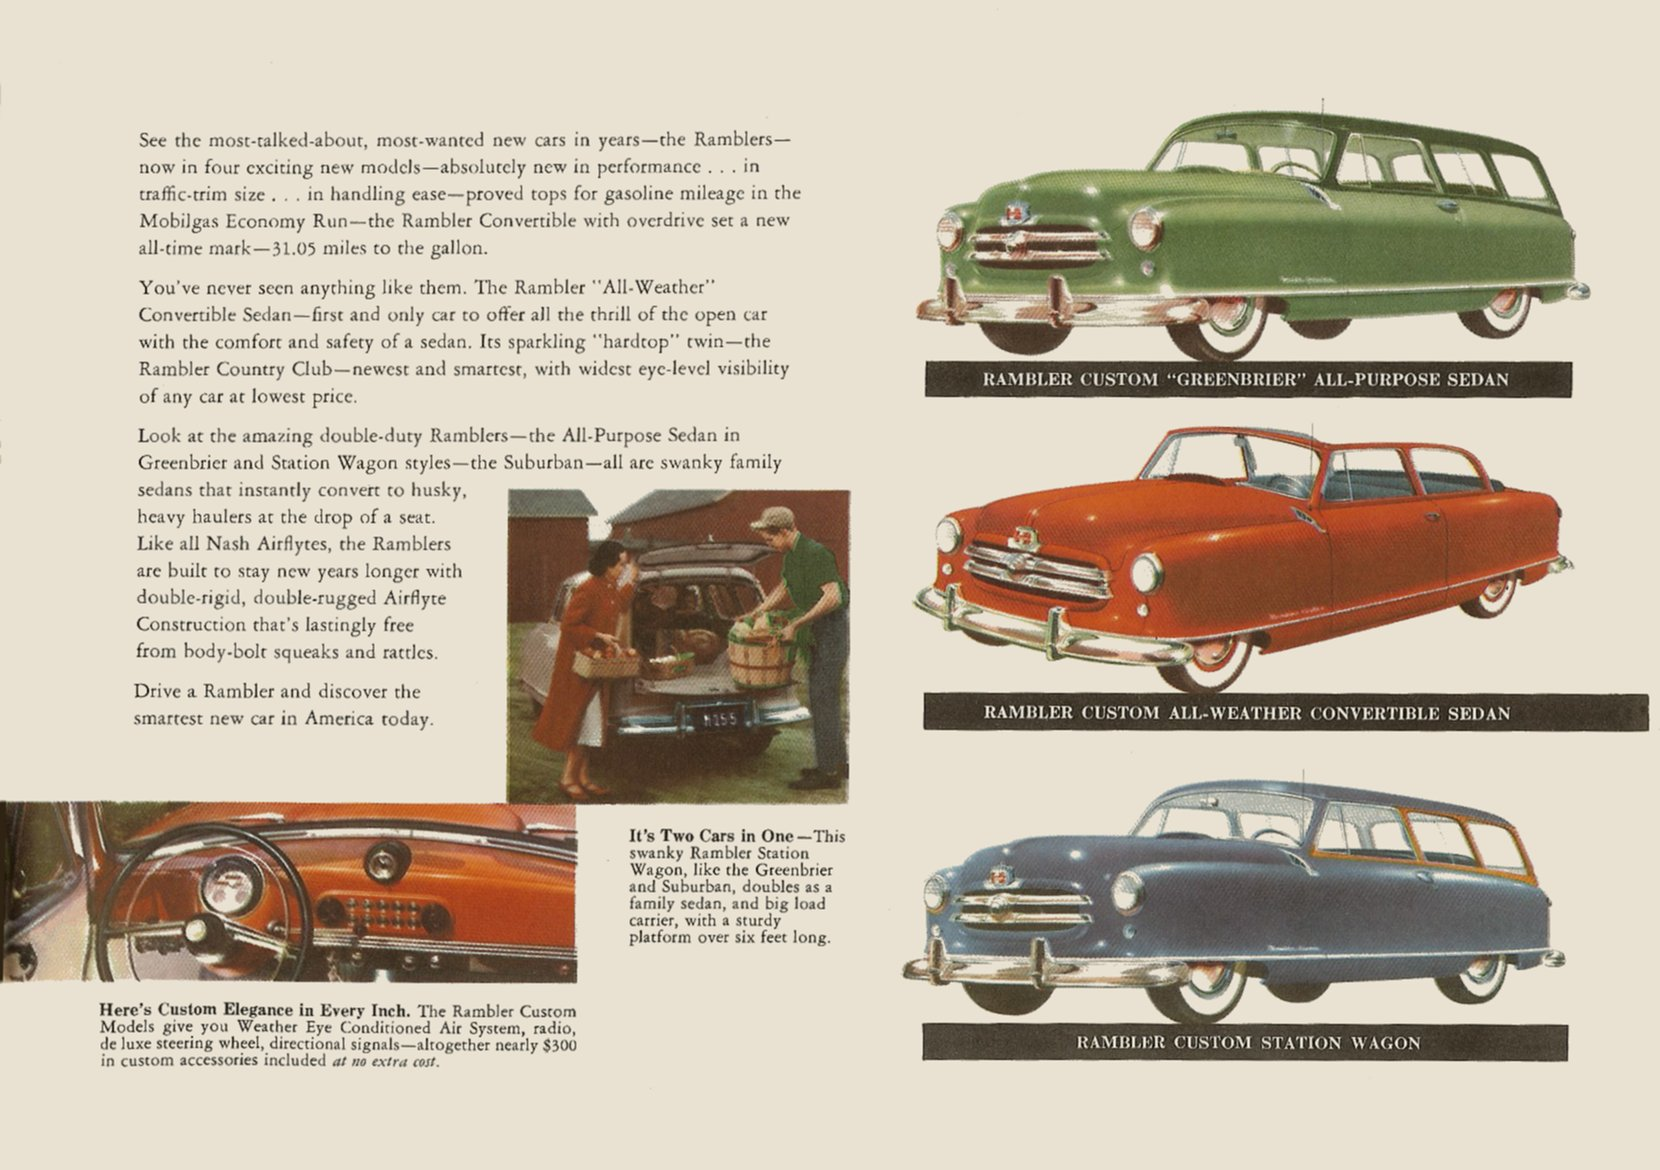 1951 NASH The New NASH Airflytes Sales Catalog NSP51-783-400M – October 1, 1951 Page 12